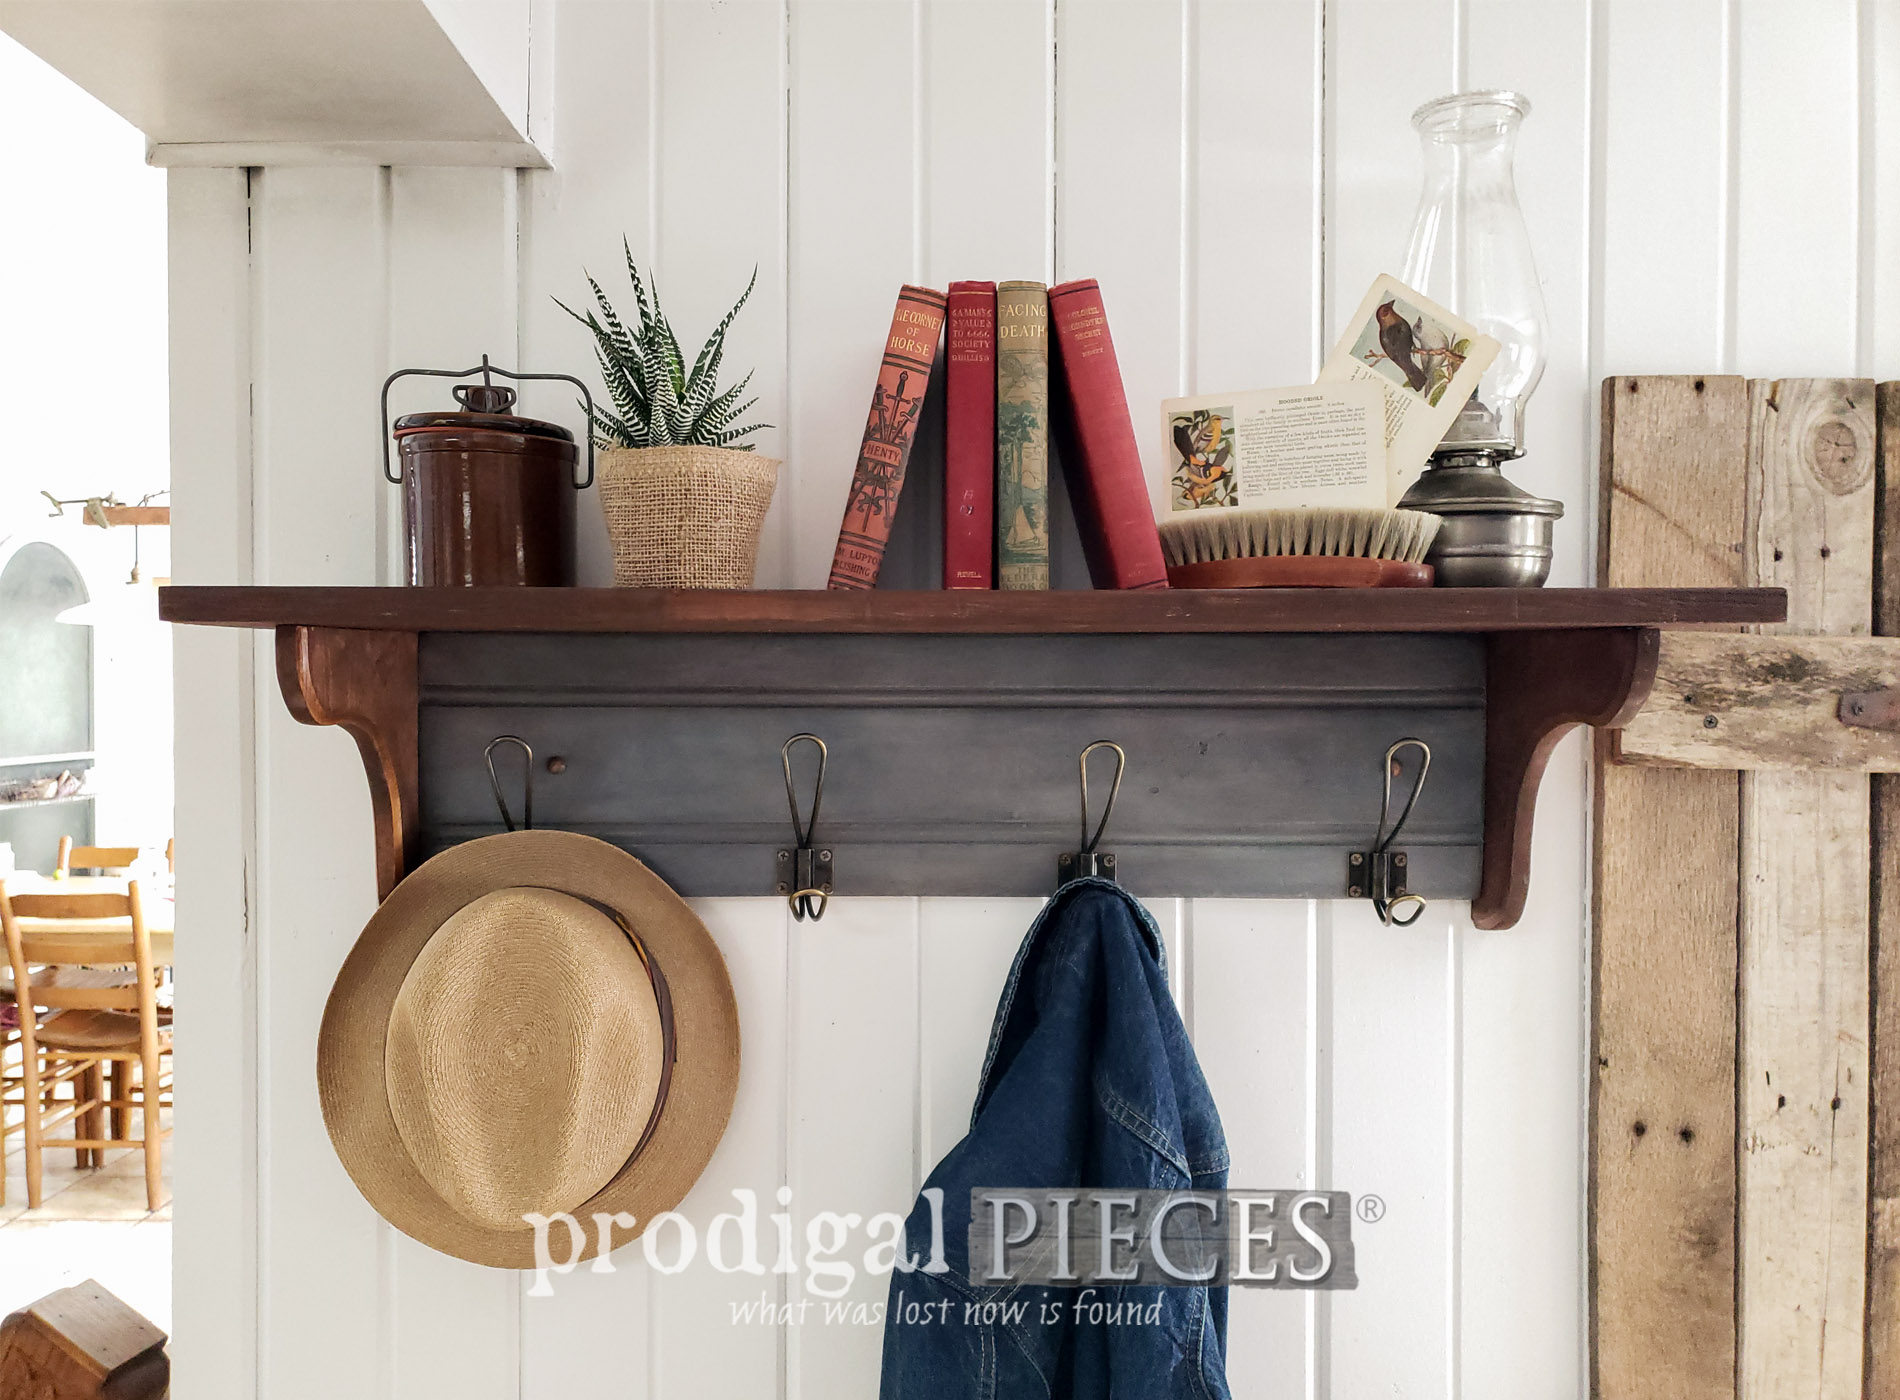 Featured DIY Reclaimed Coat Rack by Larissa of Prodigal Pieces | prodigalpieces.com #prodigalpieces #home #farmhouse #homedecor #diy #storage